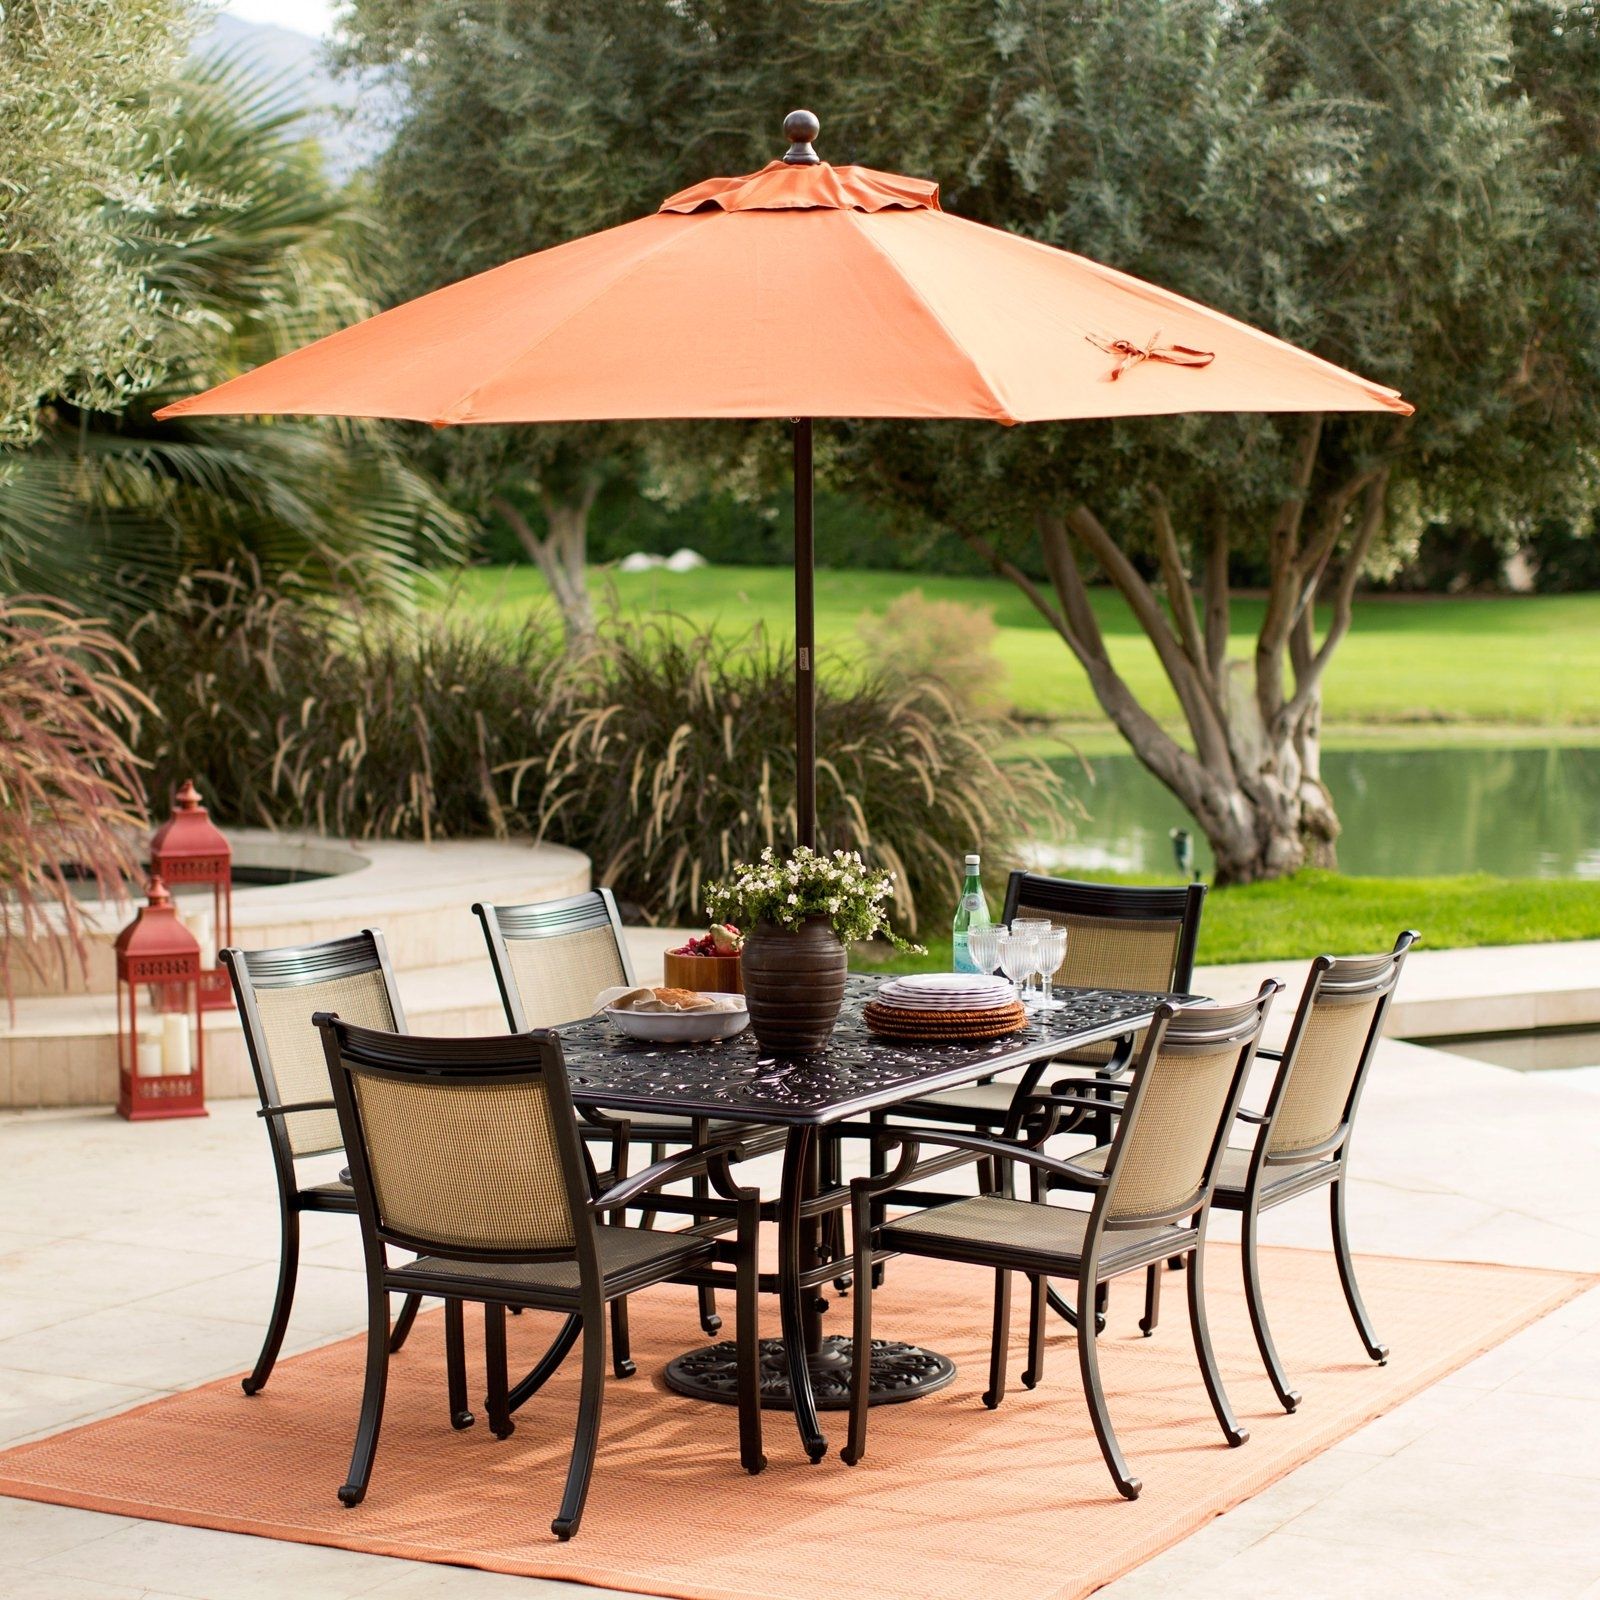 2018 Sunbrella Patio Umbrellas Pertaining To Coral Coast 9 Ft (View 2 of 20)